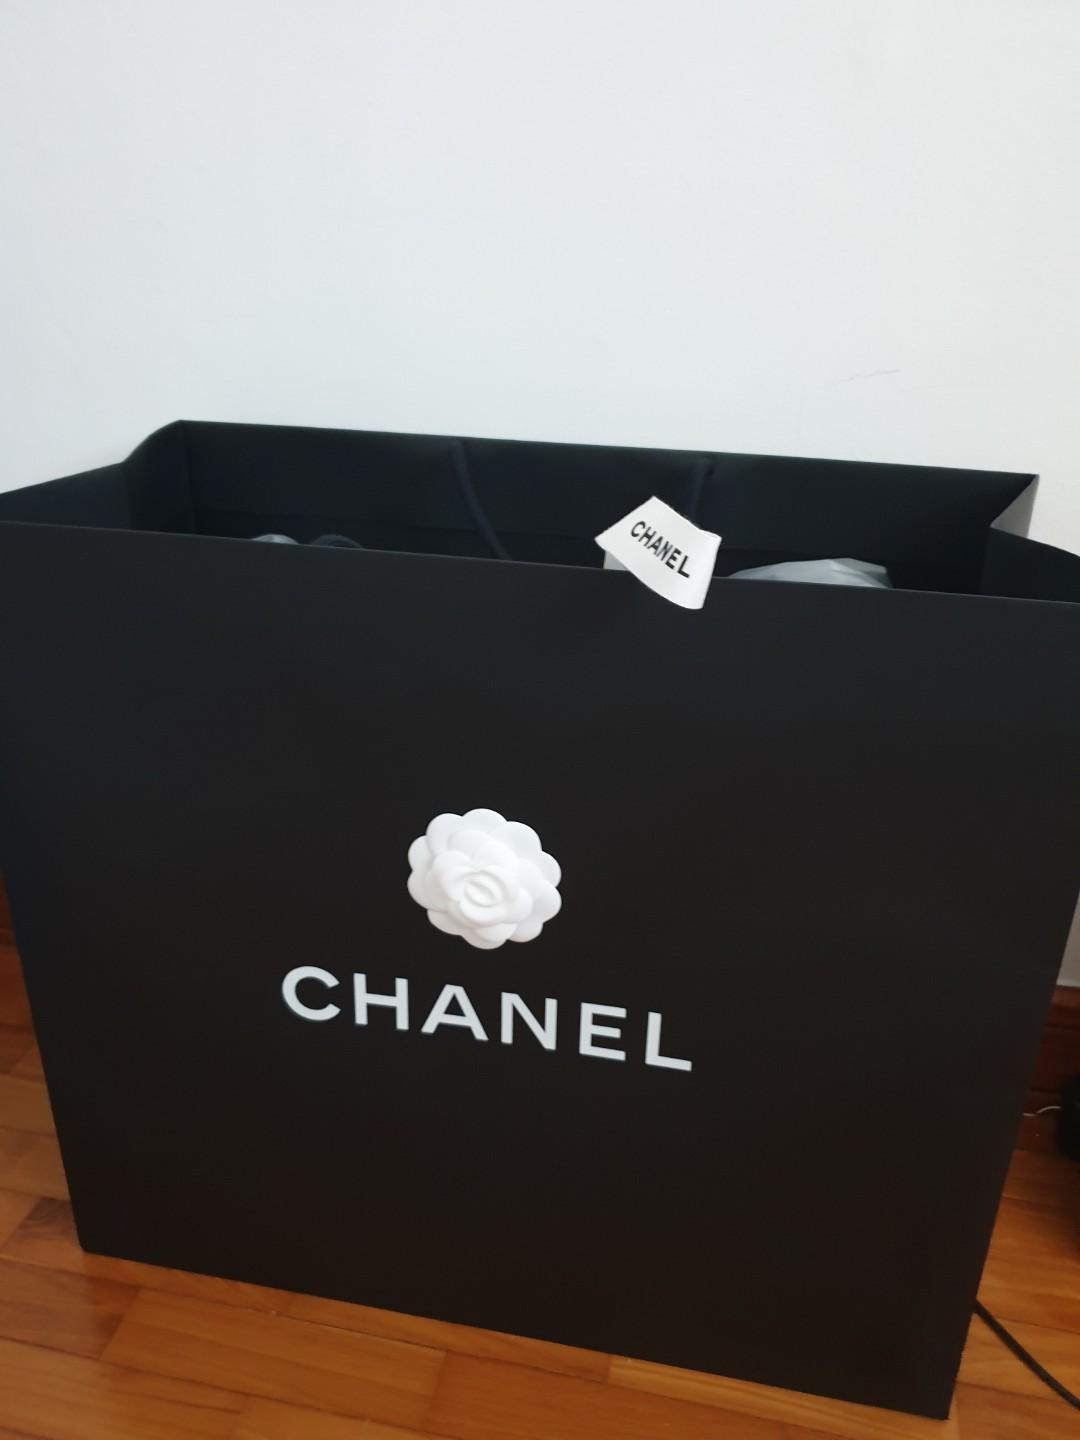 Chanel brand new paper bag jumbo large size paper bag carrier black package authentic genuine white camelia flower